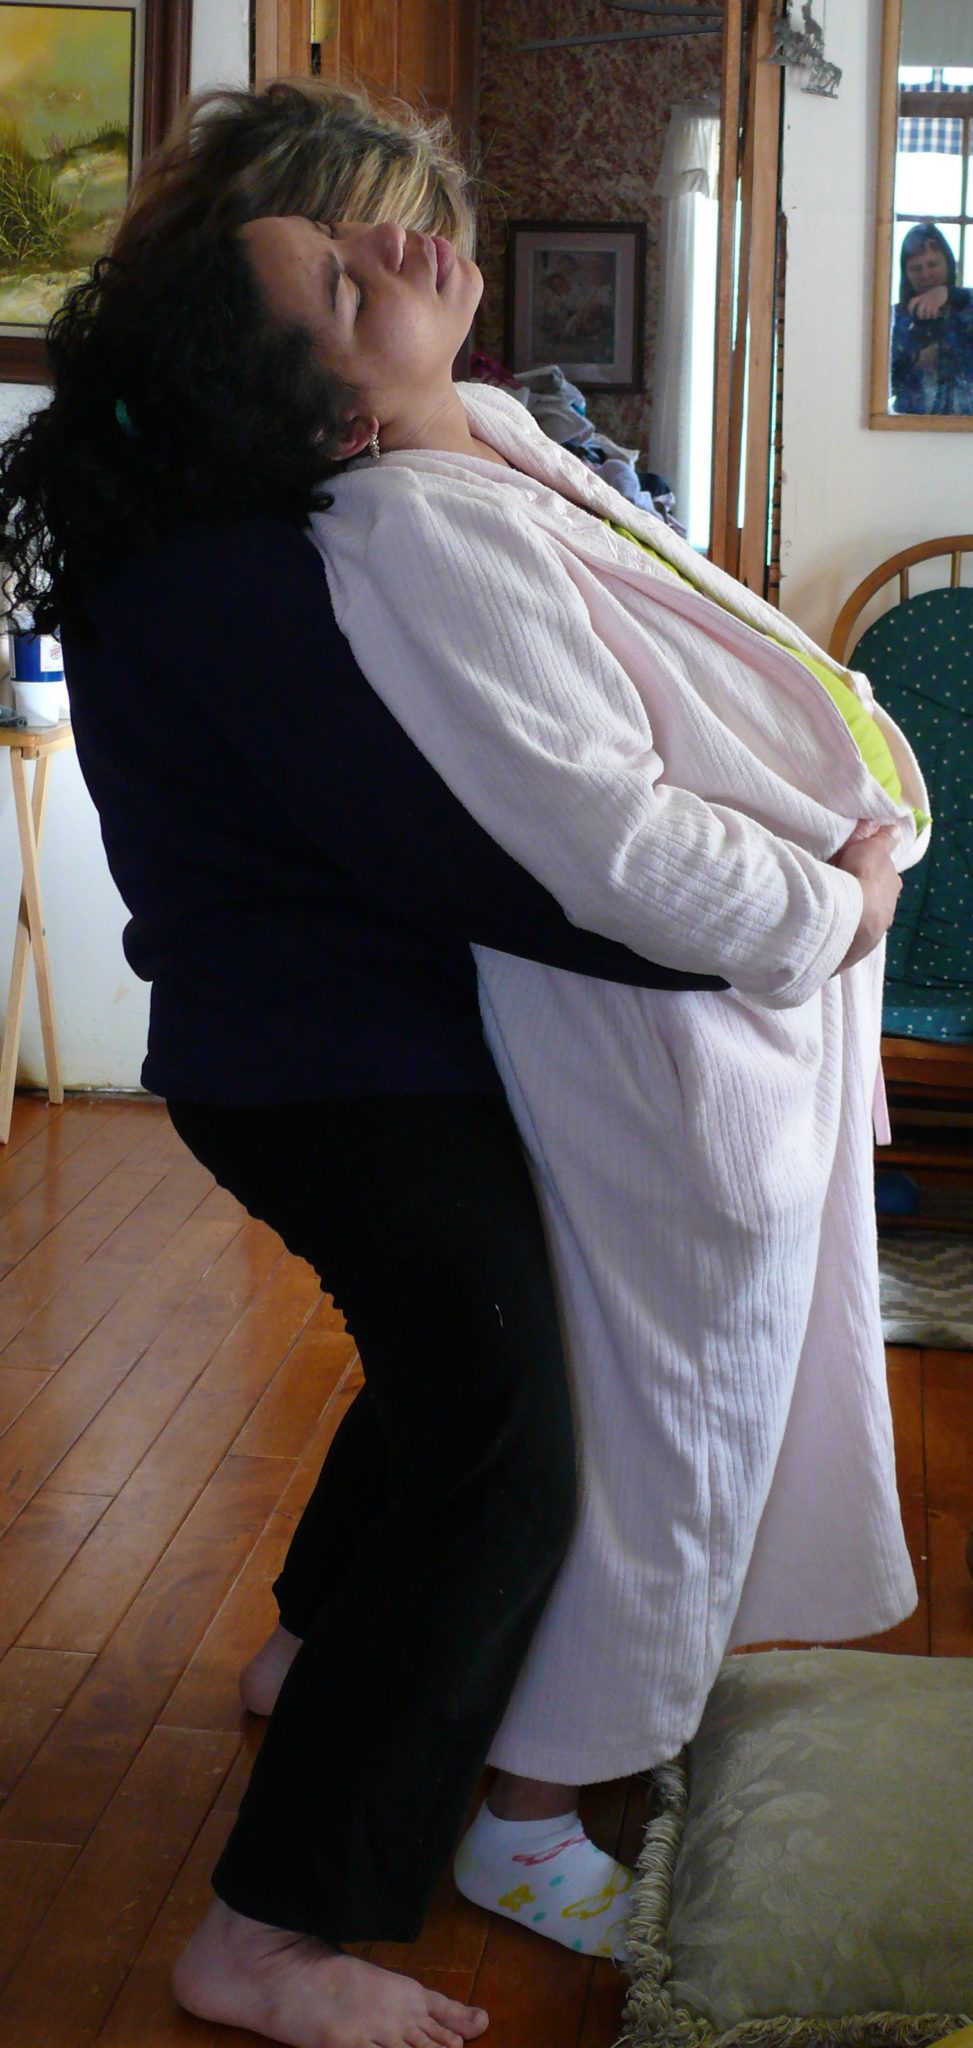 Abdominal lift during a contraction